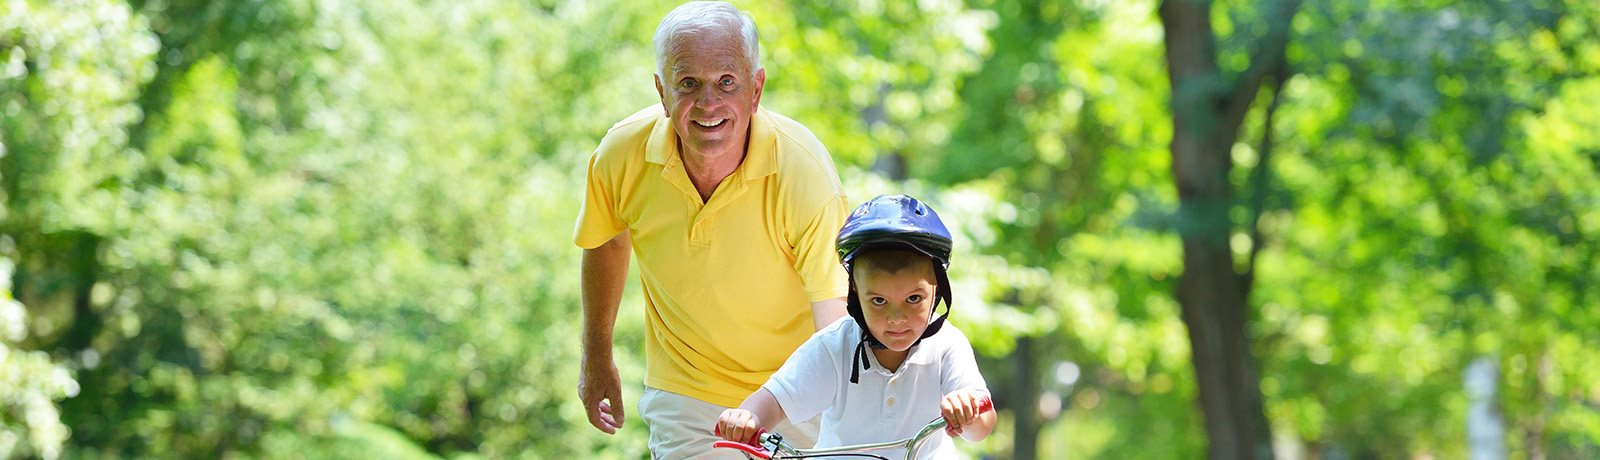 Grandfather with grandchild riding a bike in a peaceful forest